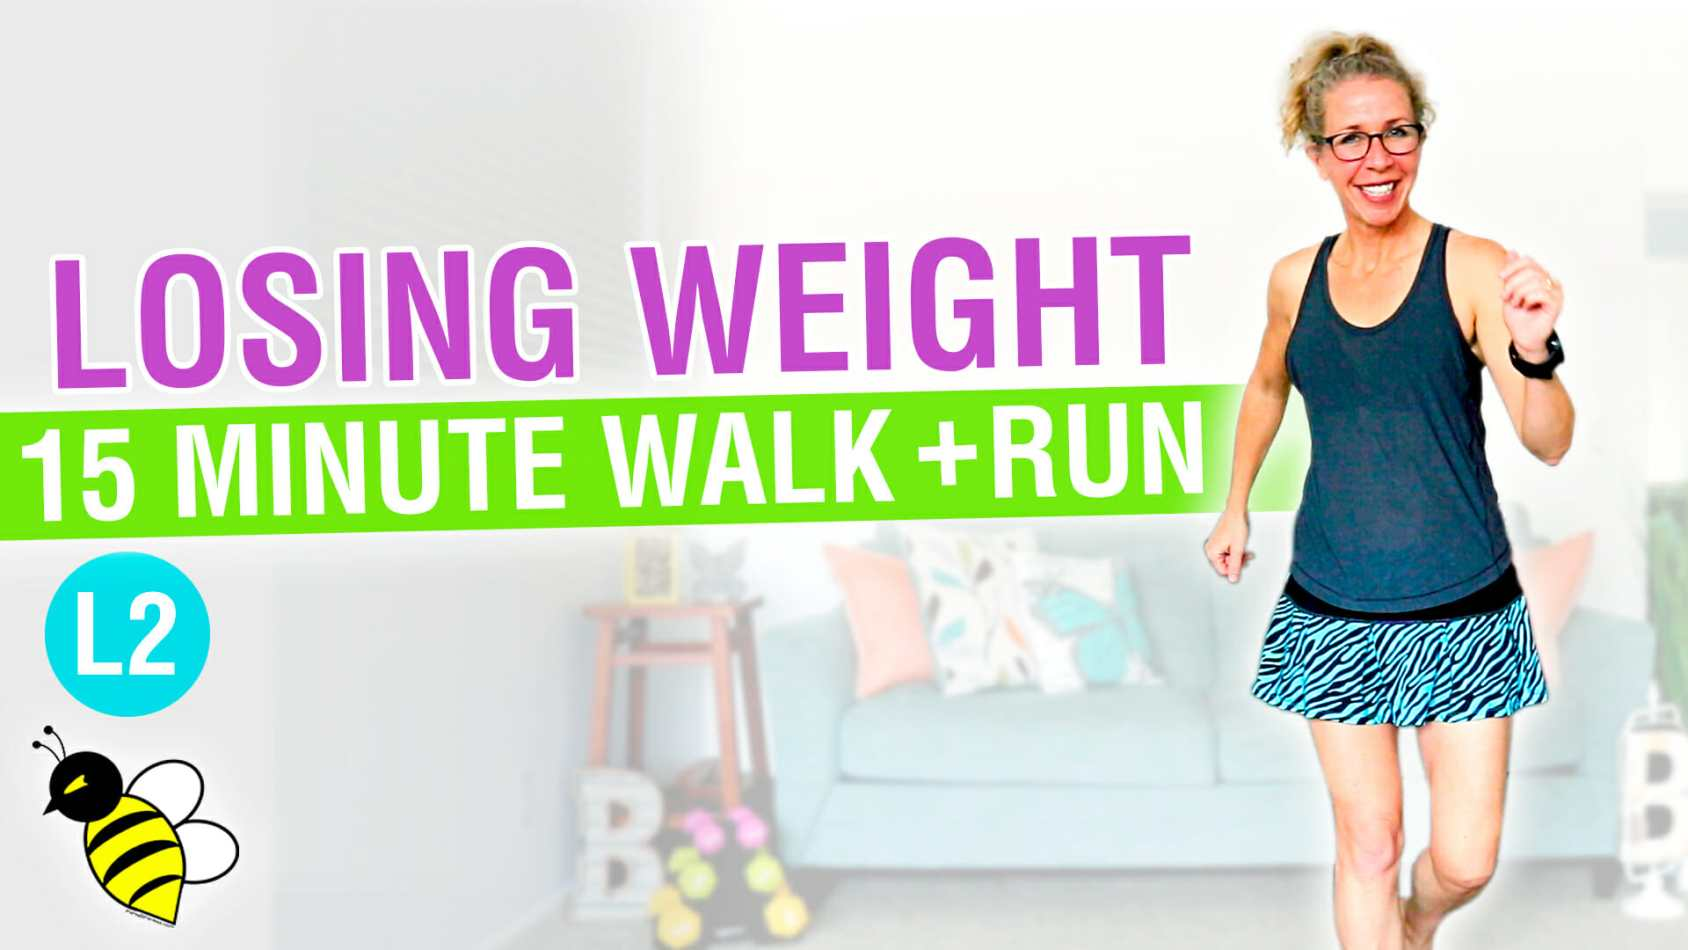 How LOSING WEIGHT Changes You 15 minute WALK + RUN